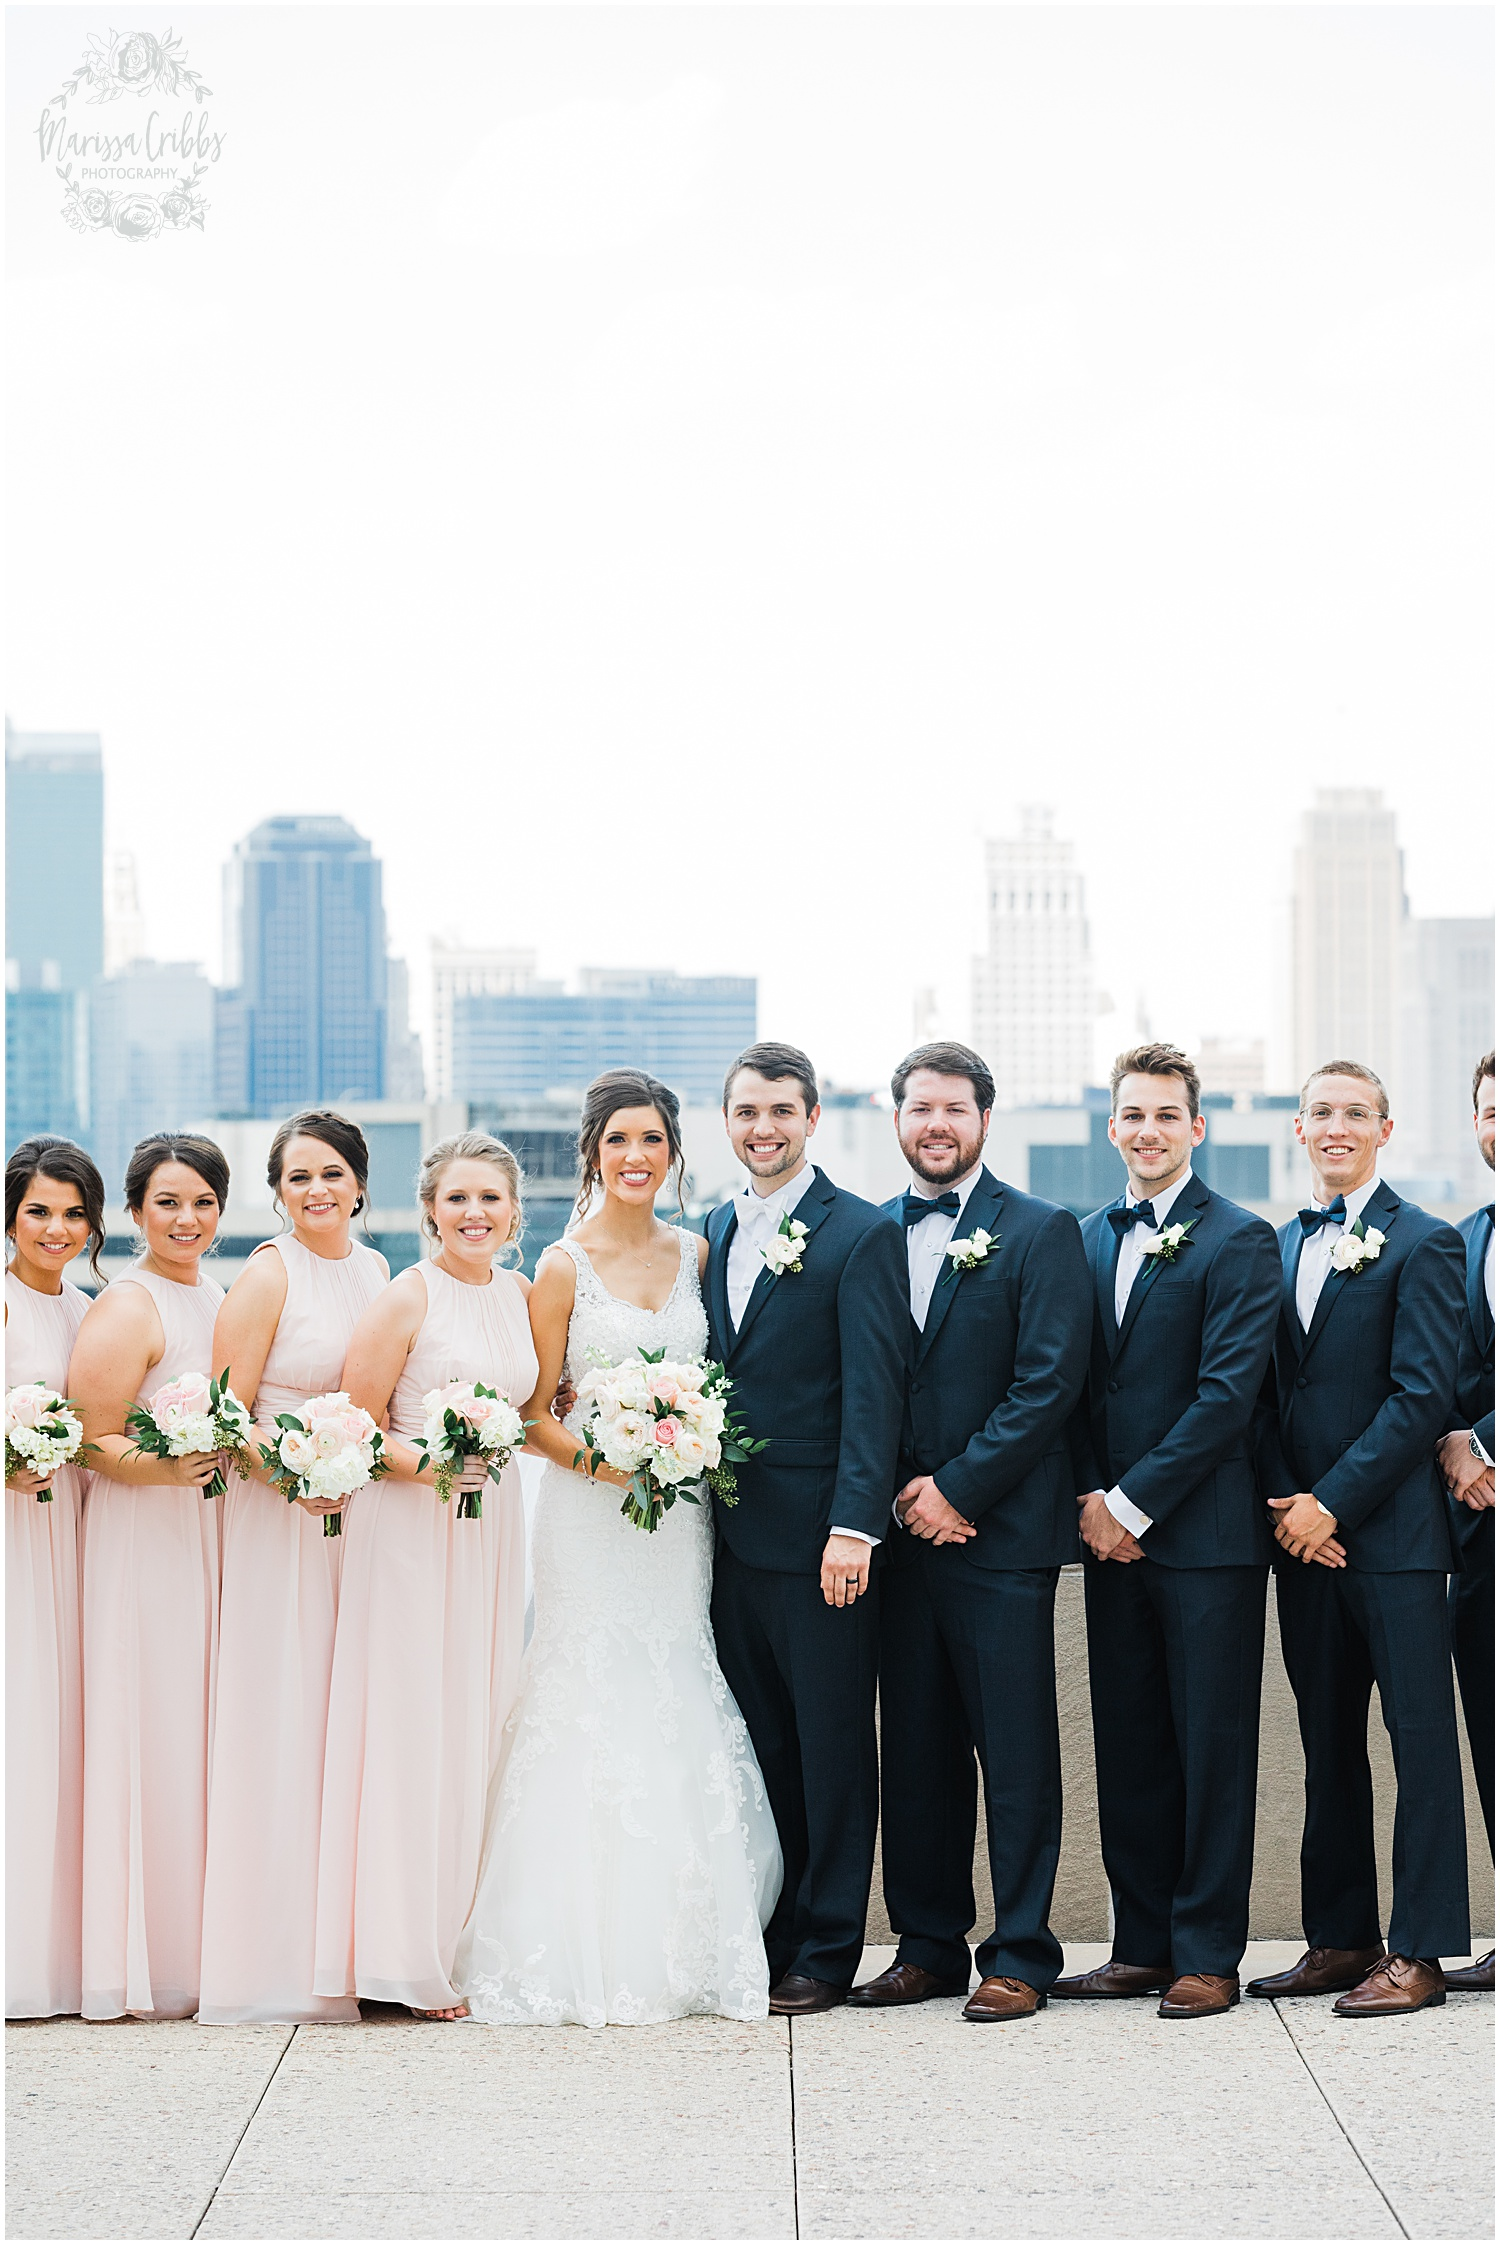 MEGAN & DEREK WEDDING BLOG | MARISSA CRIBBS PHOTOGRAPHY_8144.jpg